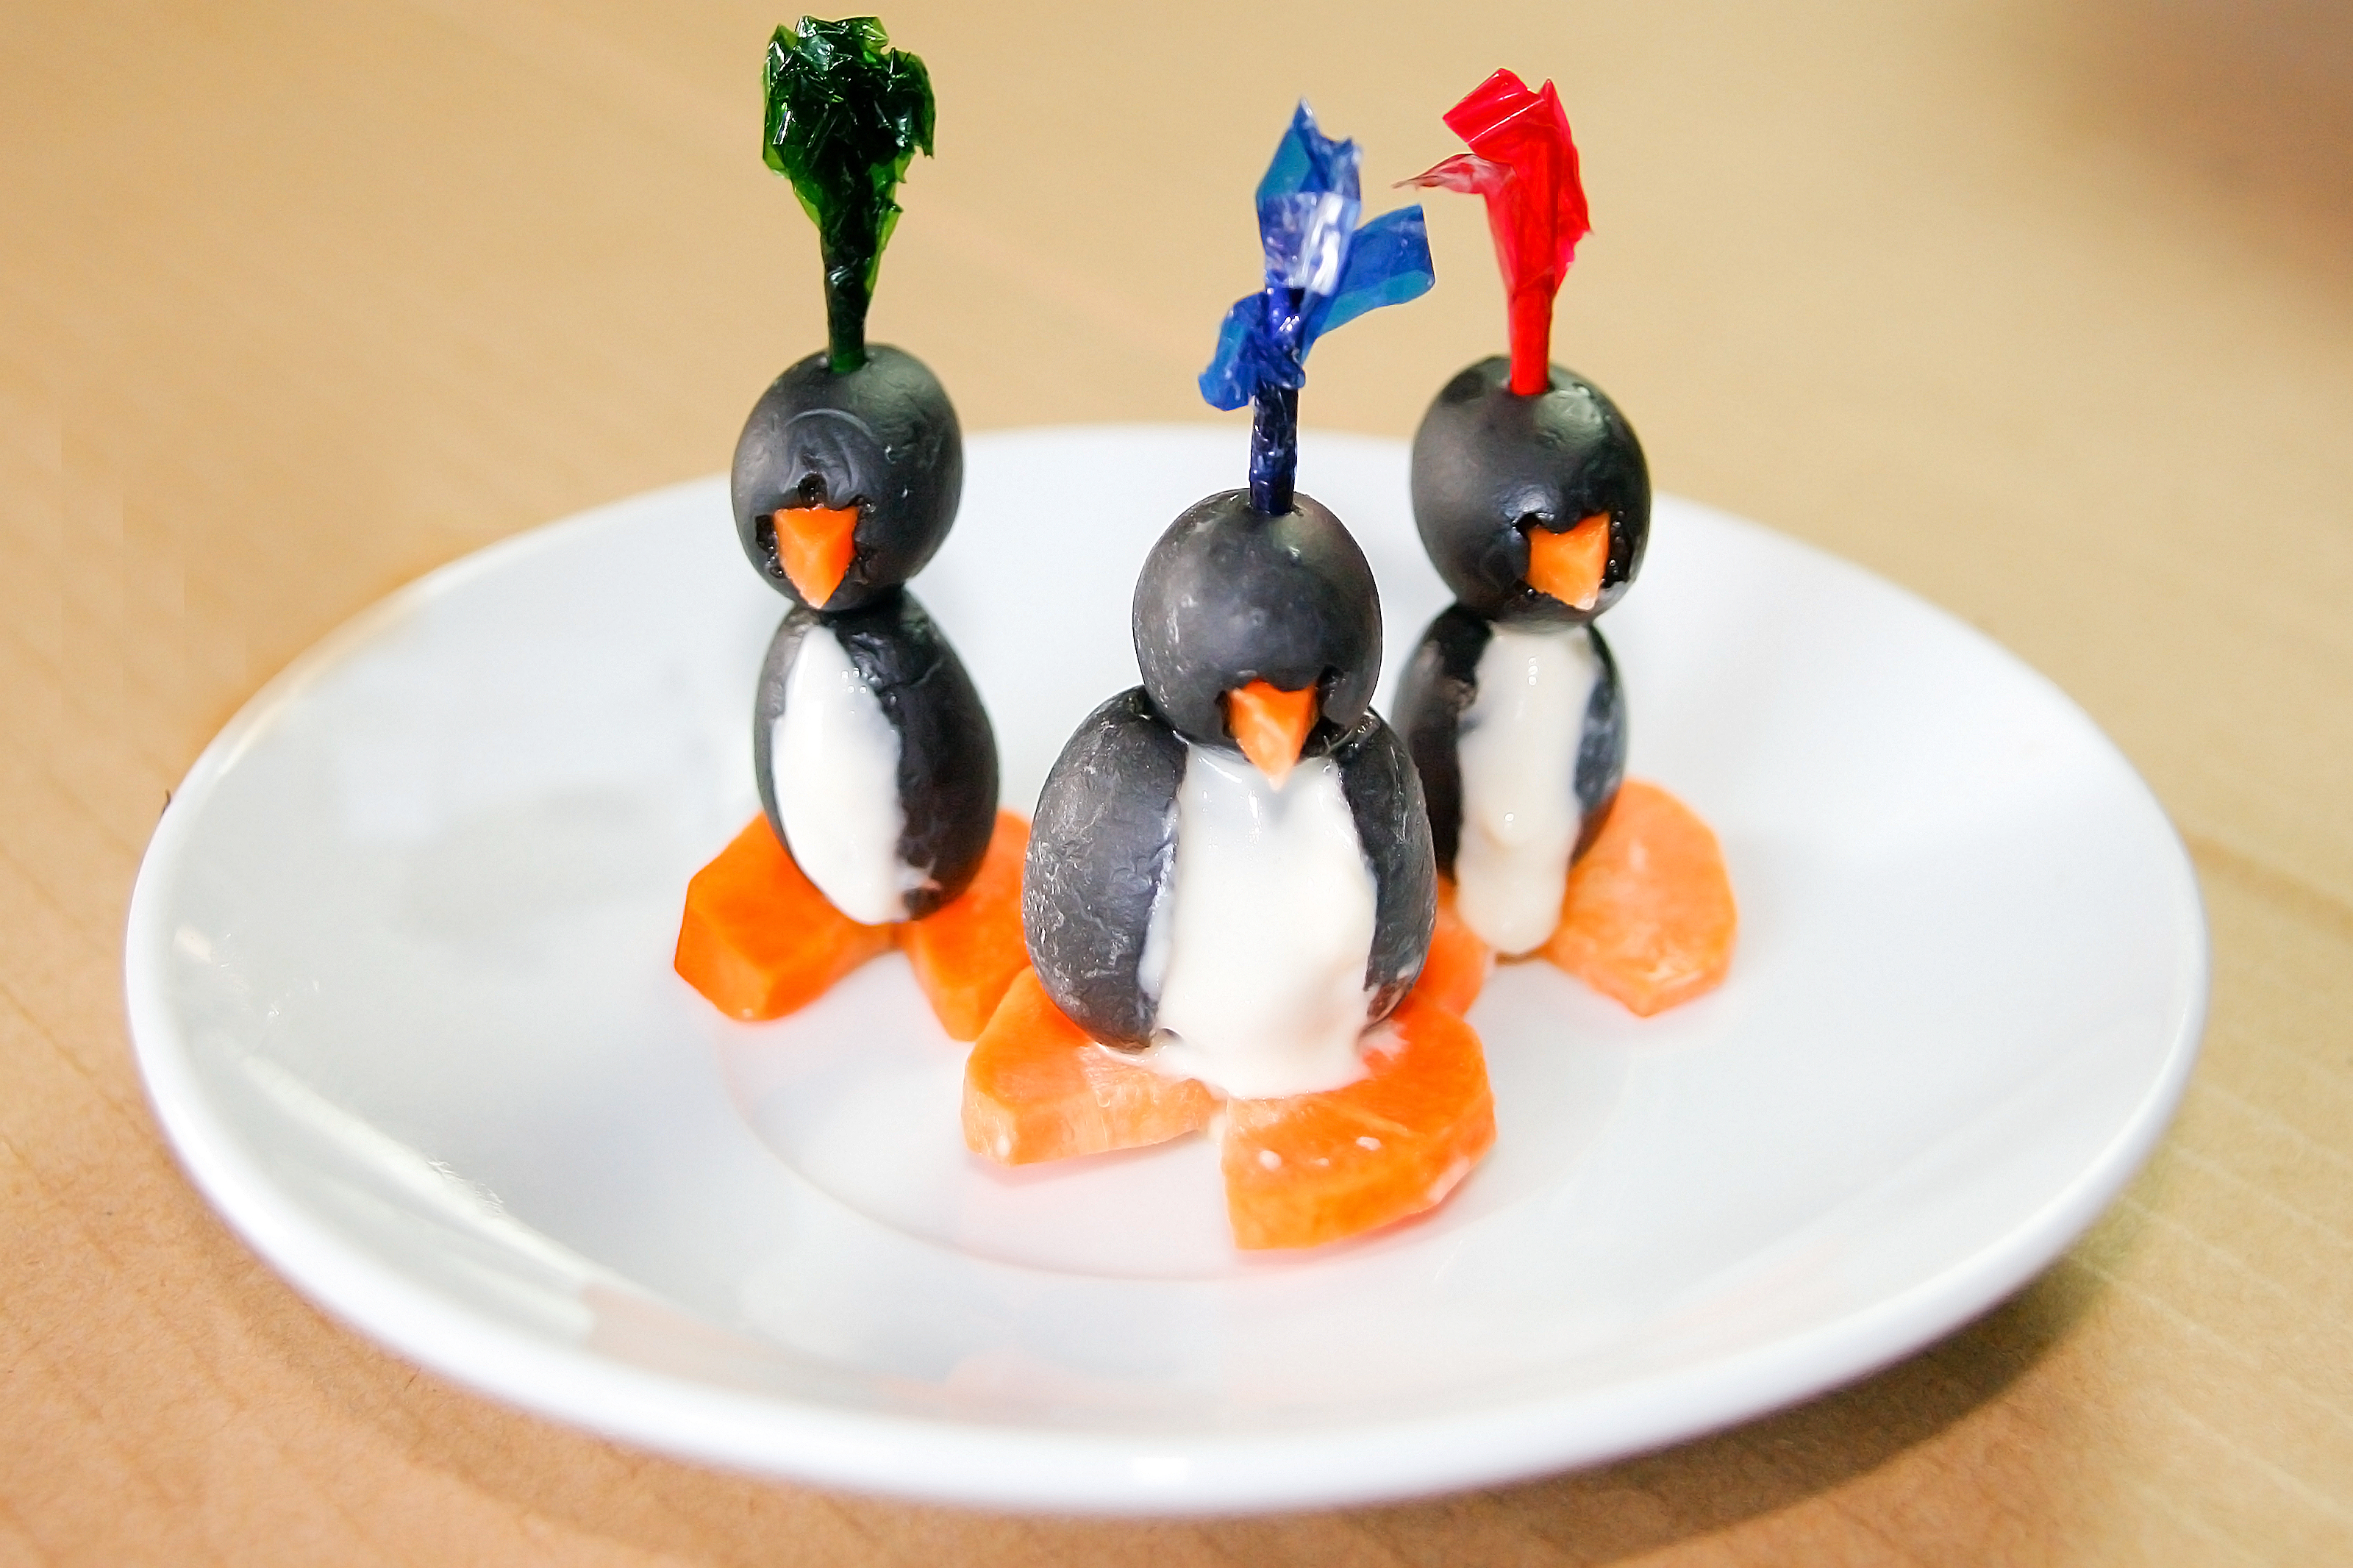 How To Make Penguins Out Of Food 11 Steps With Pictures